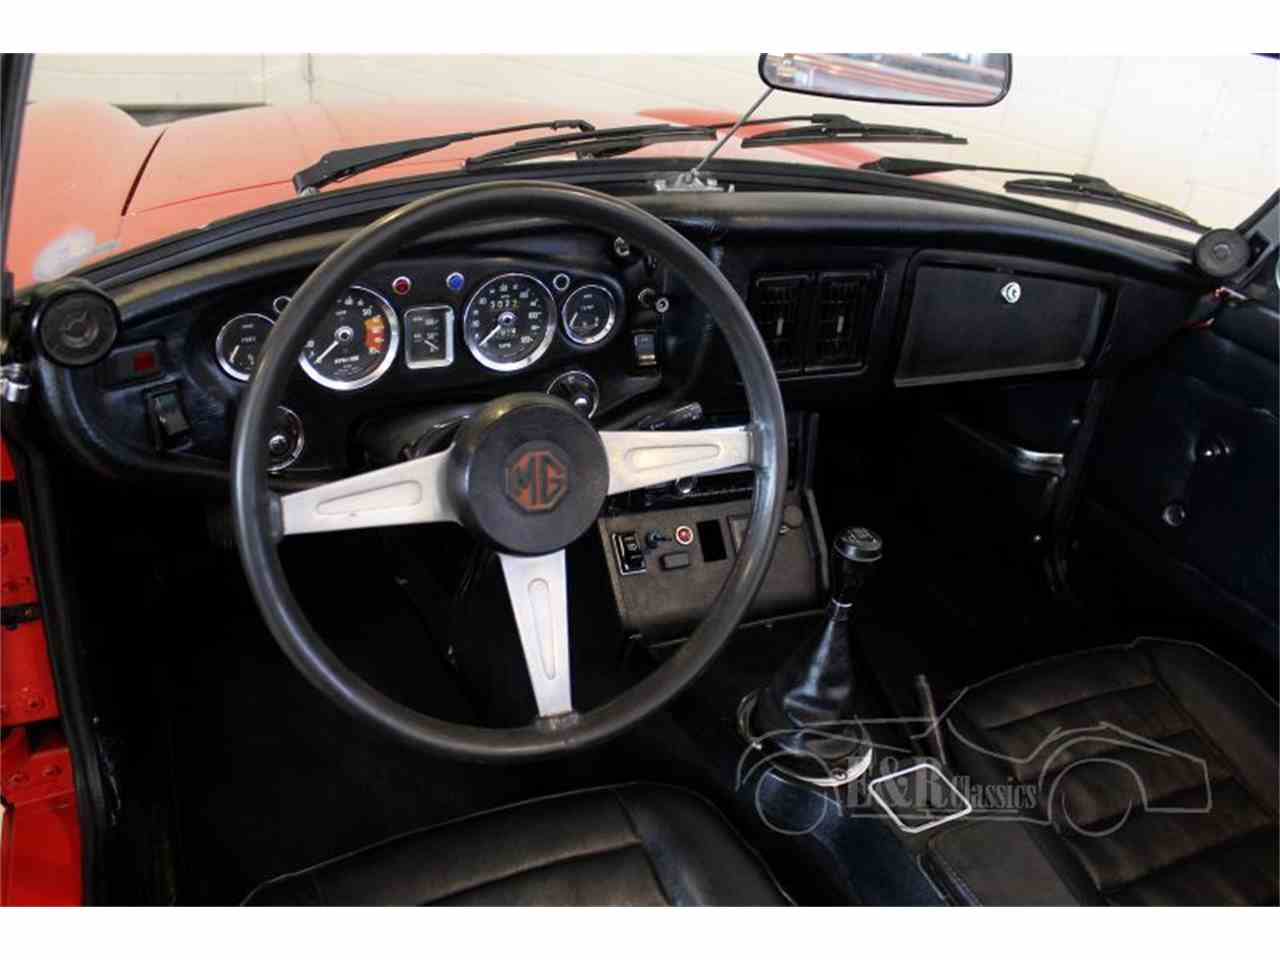 Large Picture of '75 MG MGB - $25,900.00 Offered by E & R Classics - MCUI